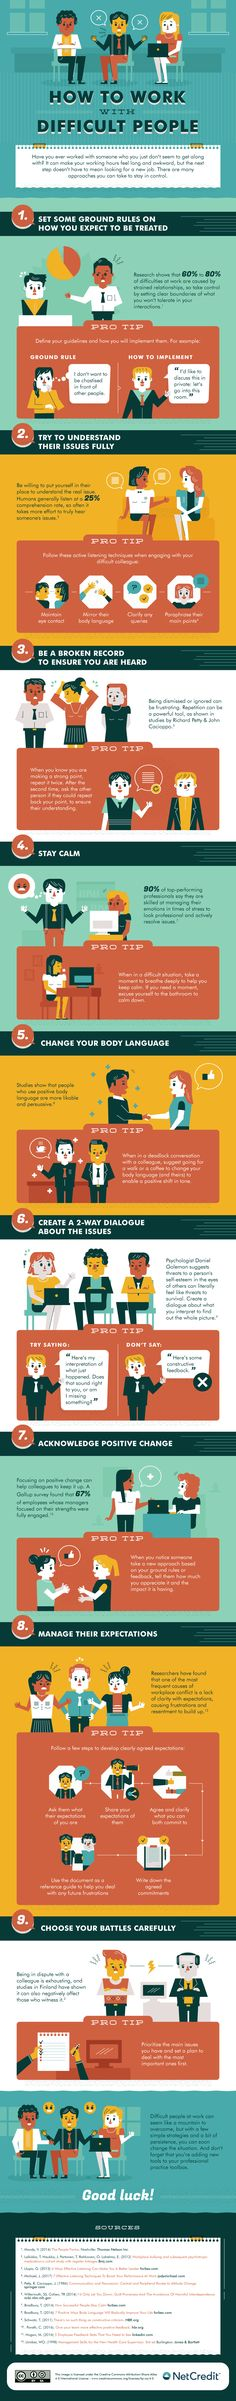 How to Work With Difficult People - #infographic